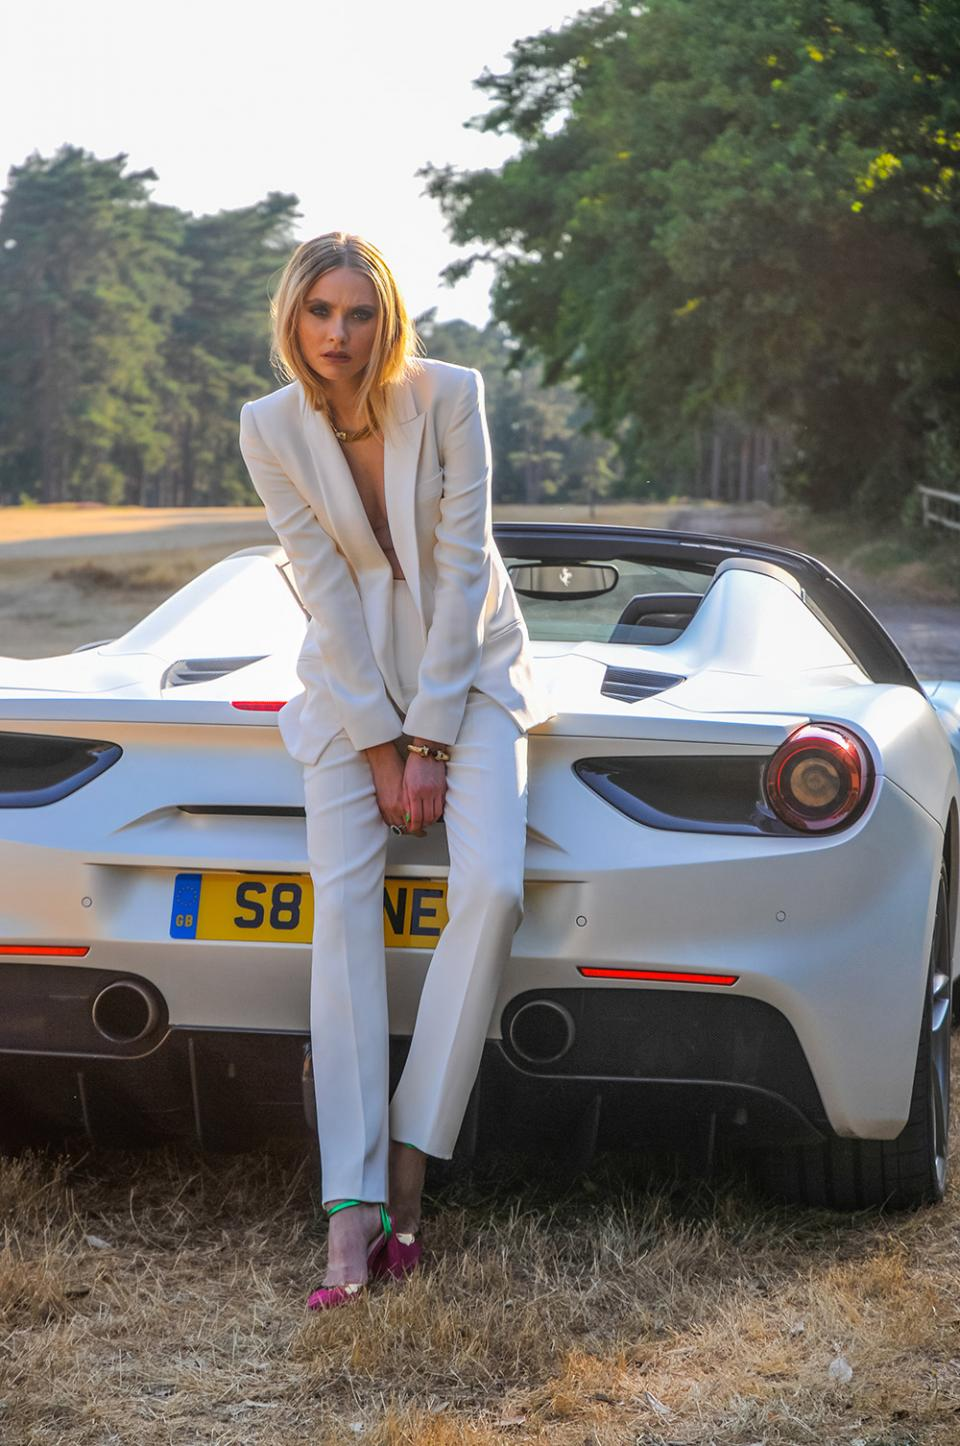 Ferrari 488 Supercar Fashion Women's Fashion White Suit